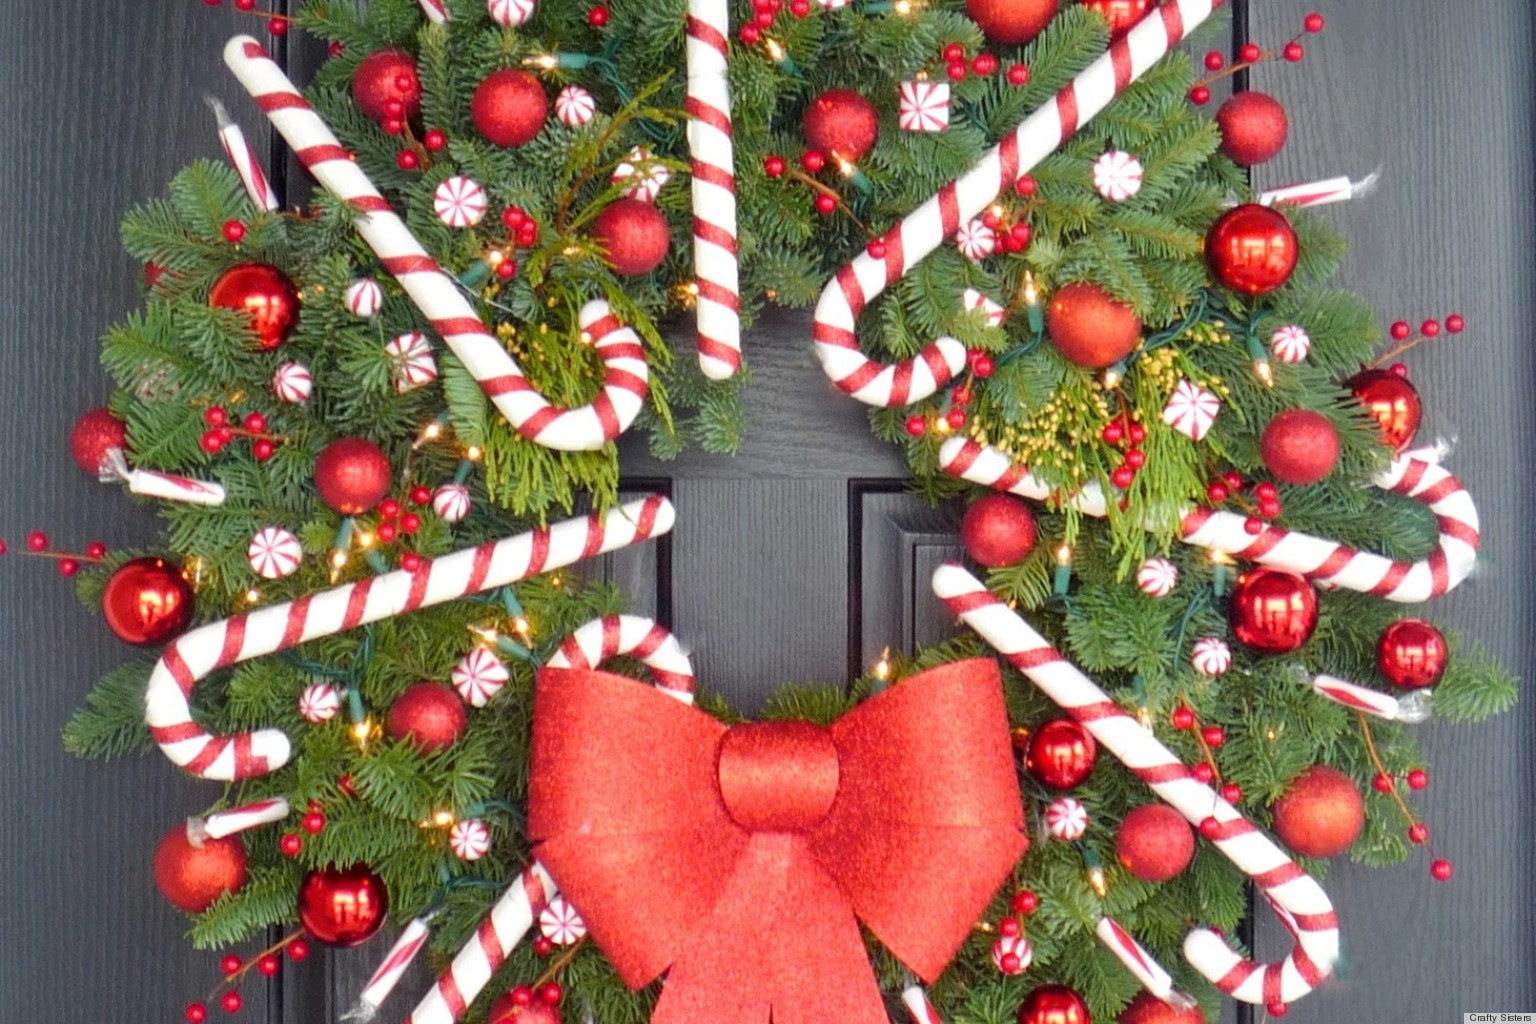 Great Christmas Craft Ideas Part - 36: Christmas Craft Idea: A Candy Cane Wreath Thatu0027ll Make Your Door Dazzle  (PHOTO) | HuffPost